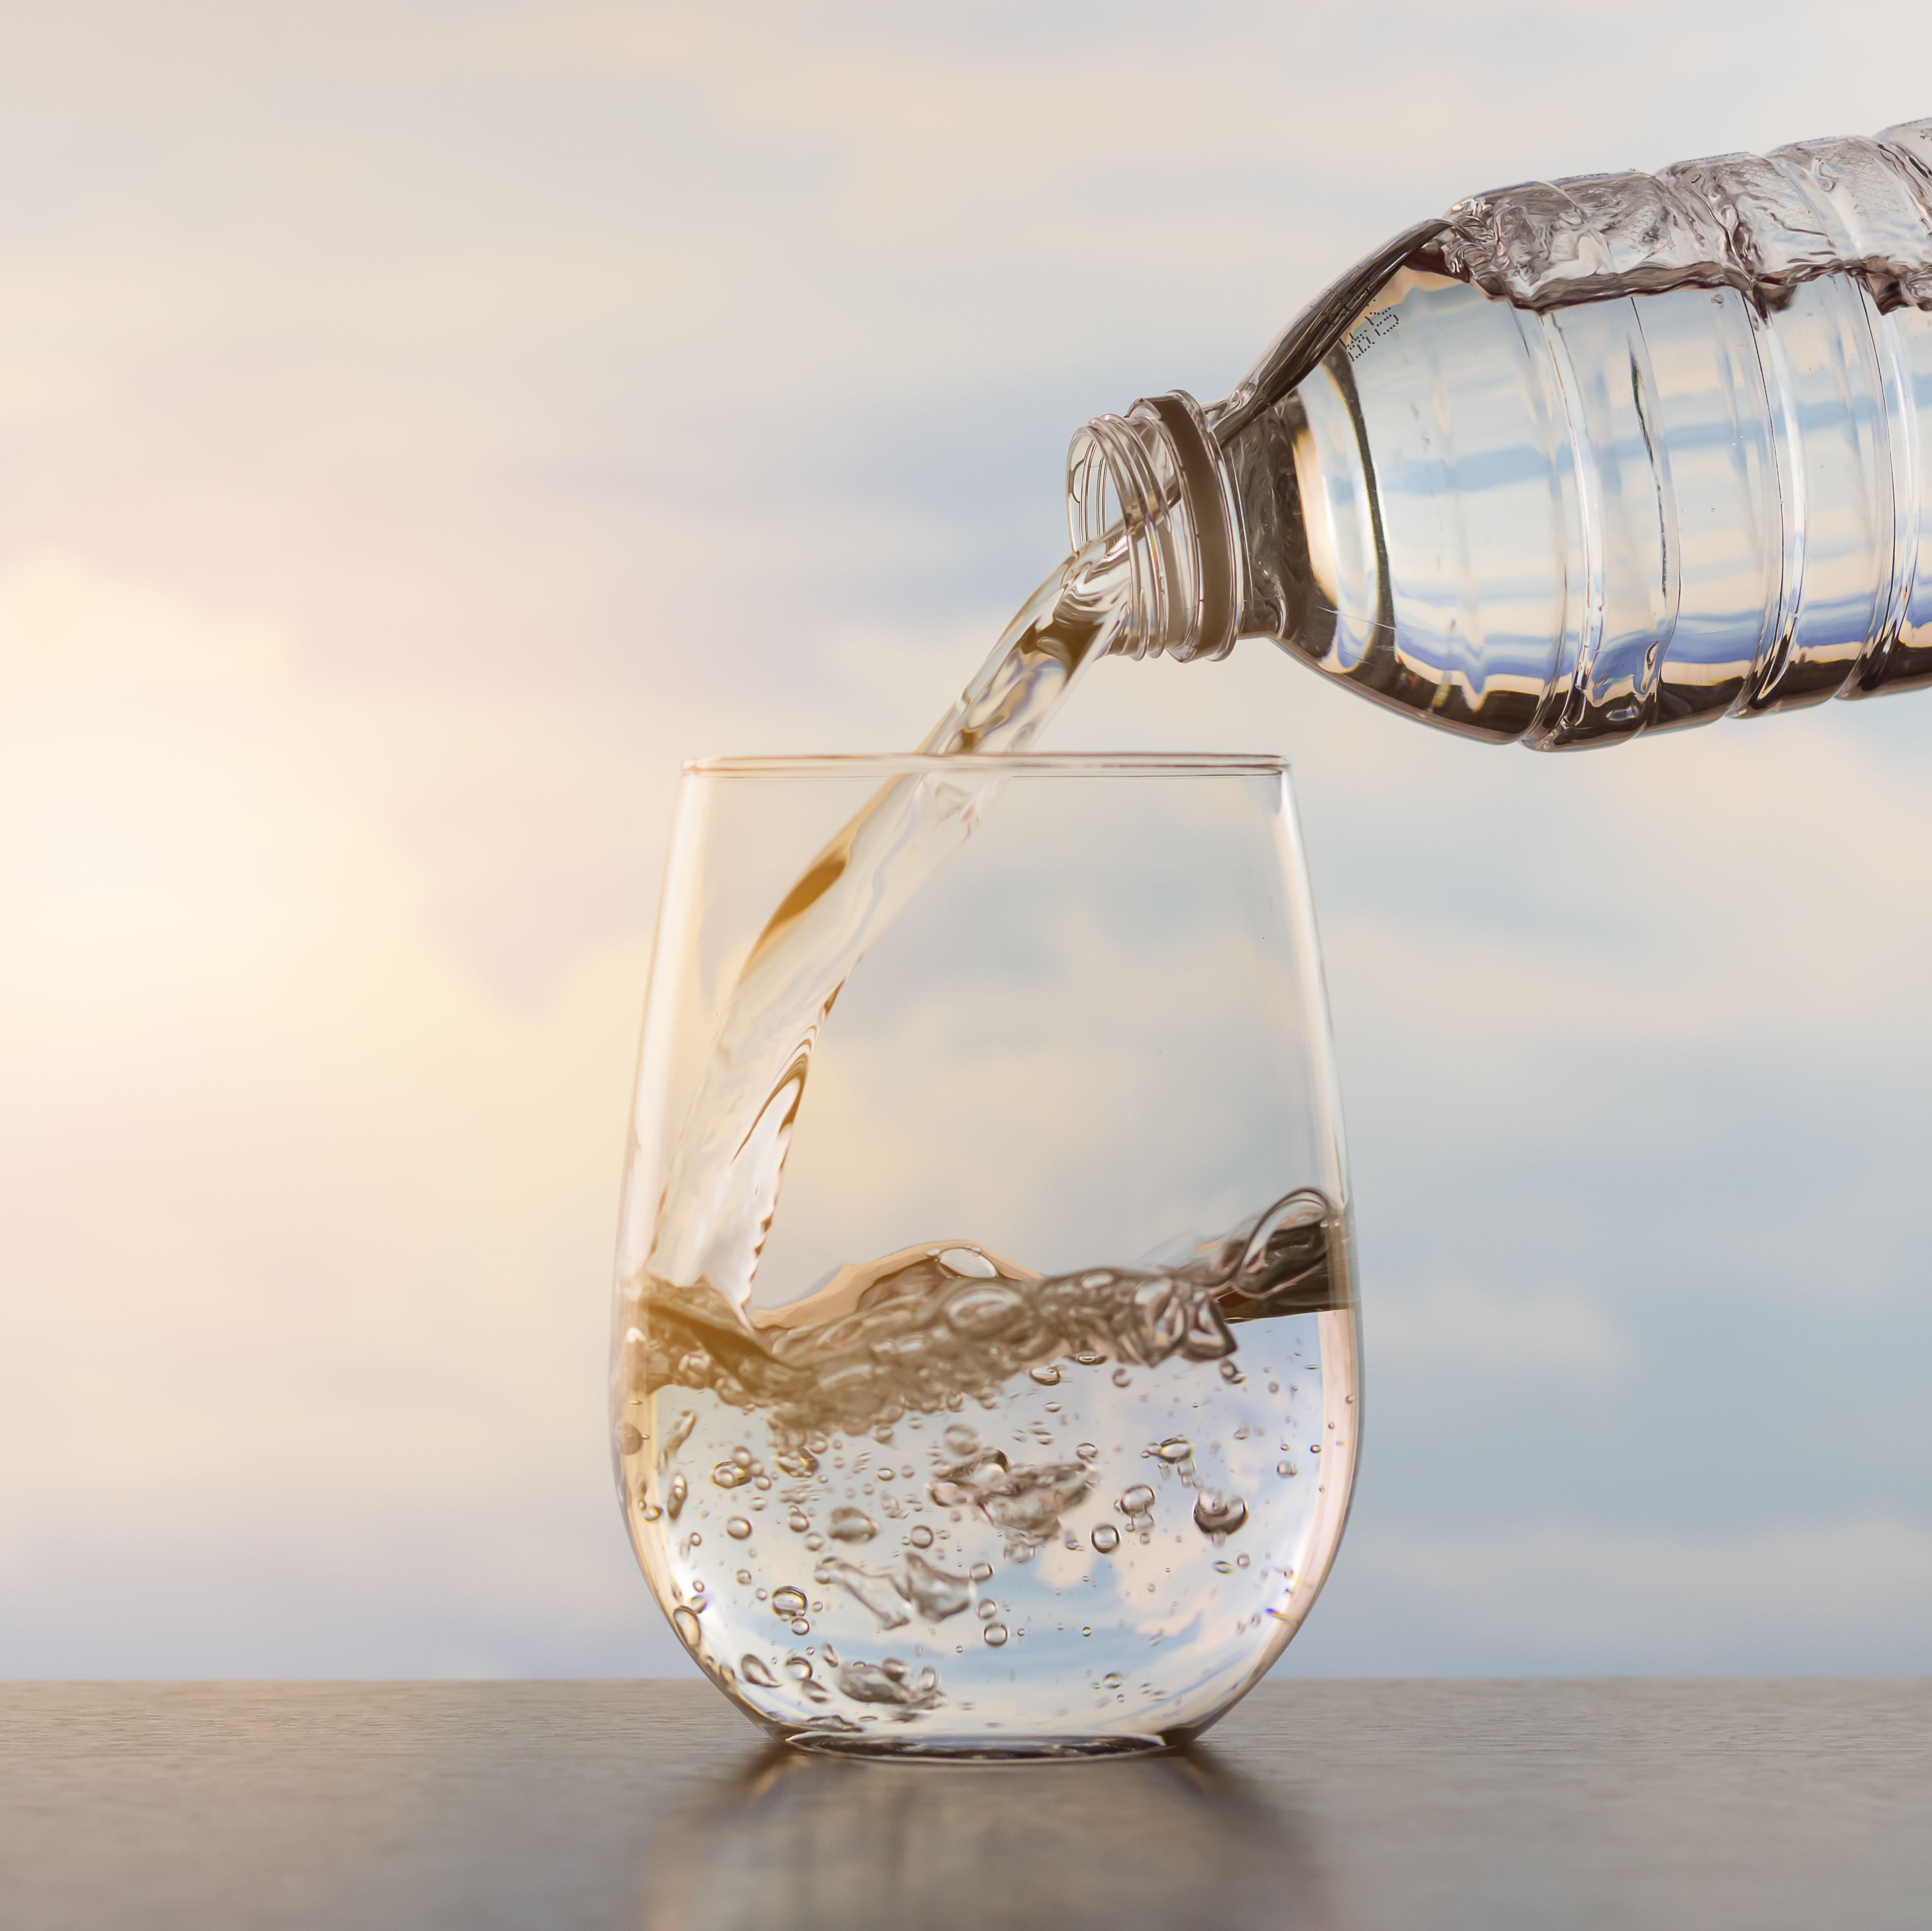 Drinking water for weight loss – does it work and how much do you need?